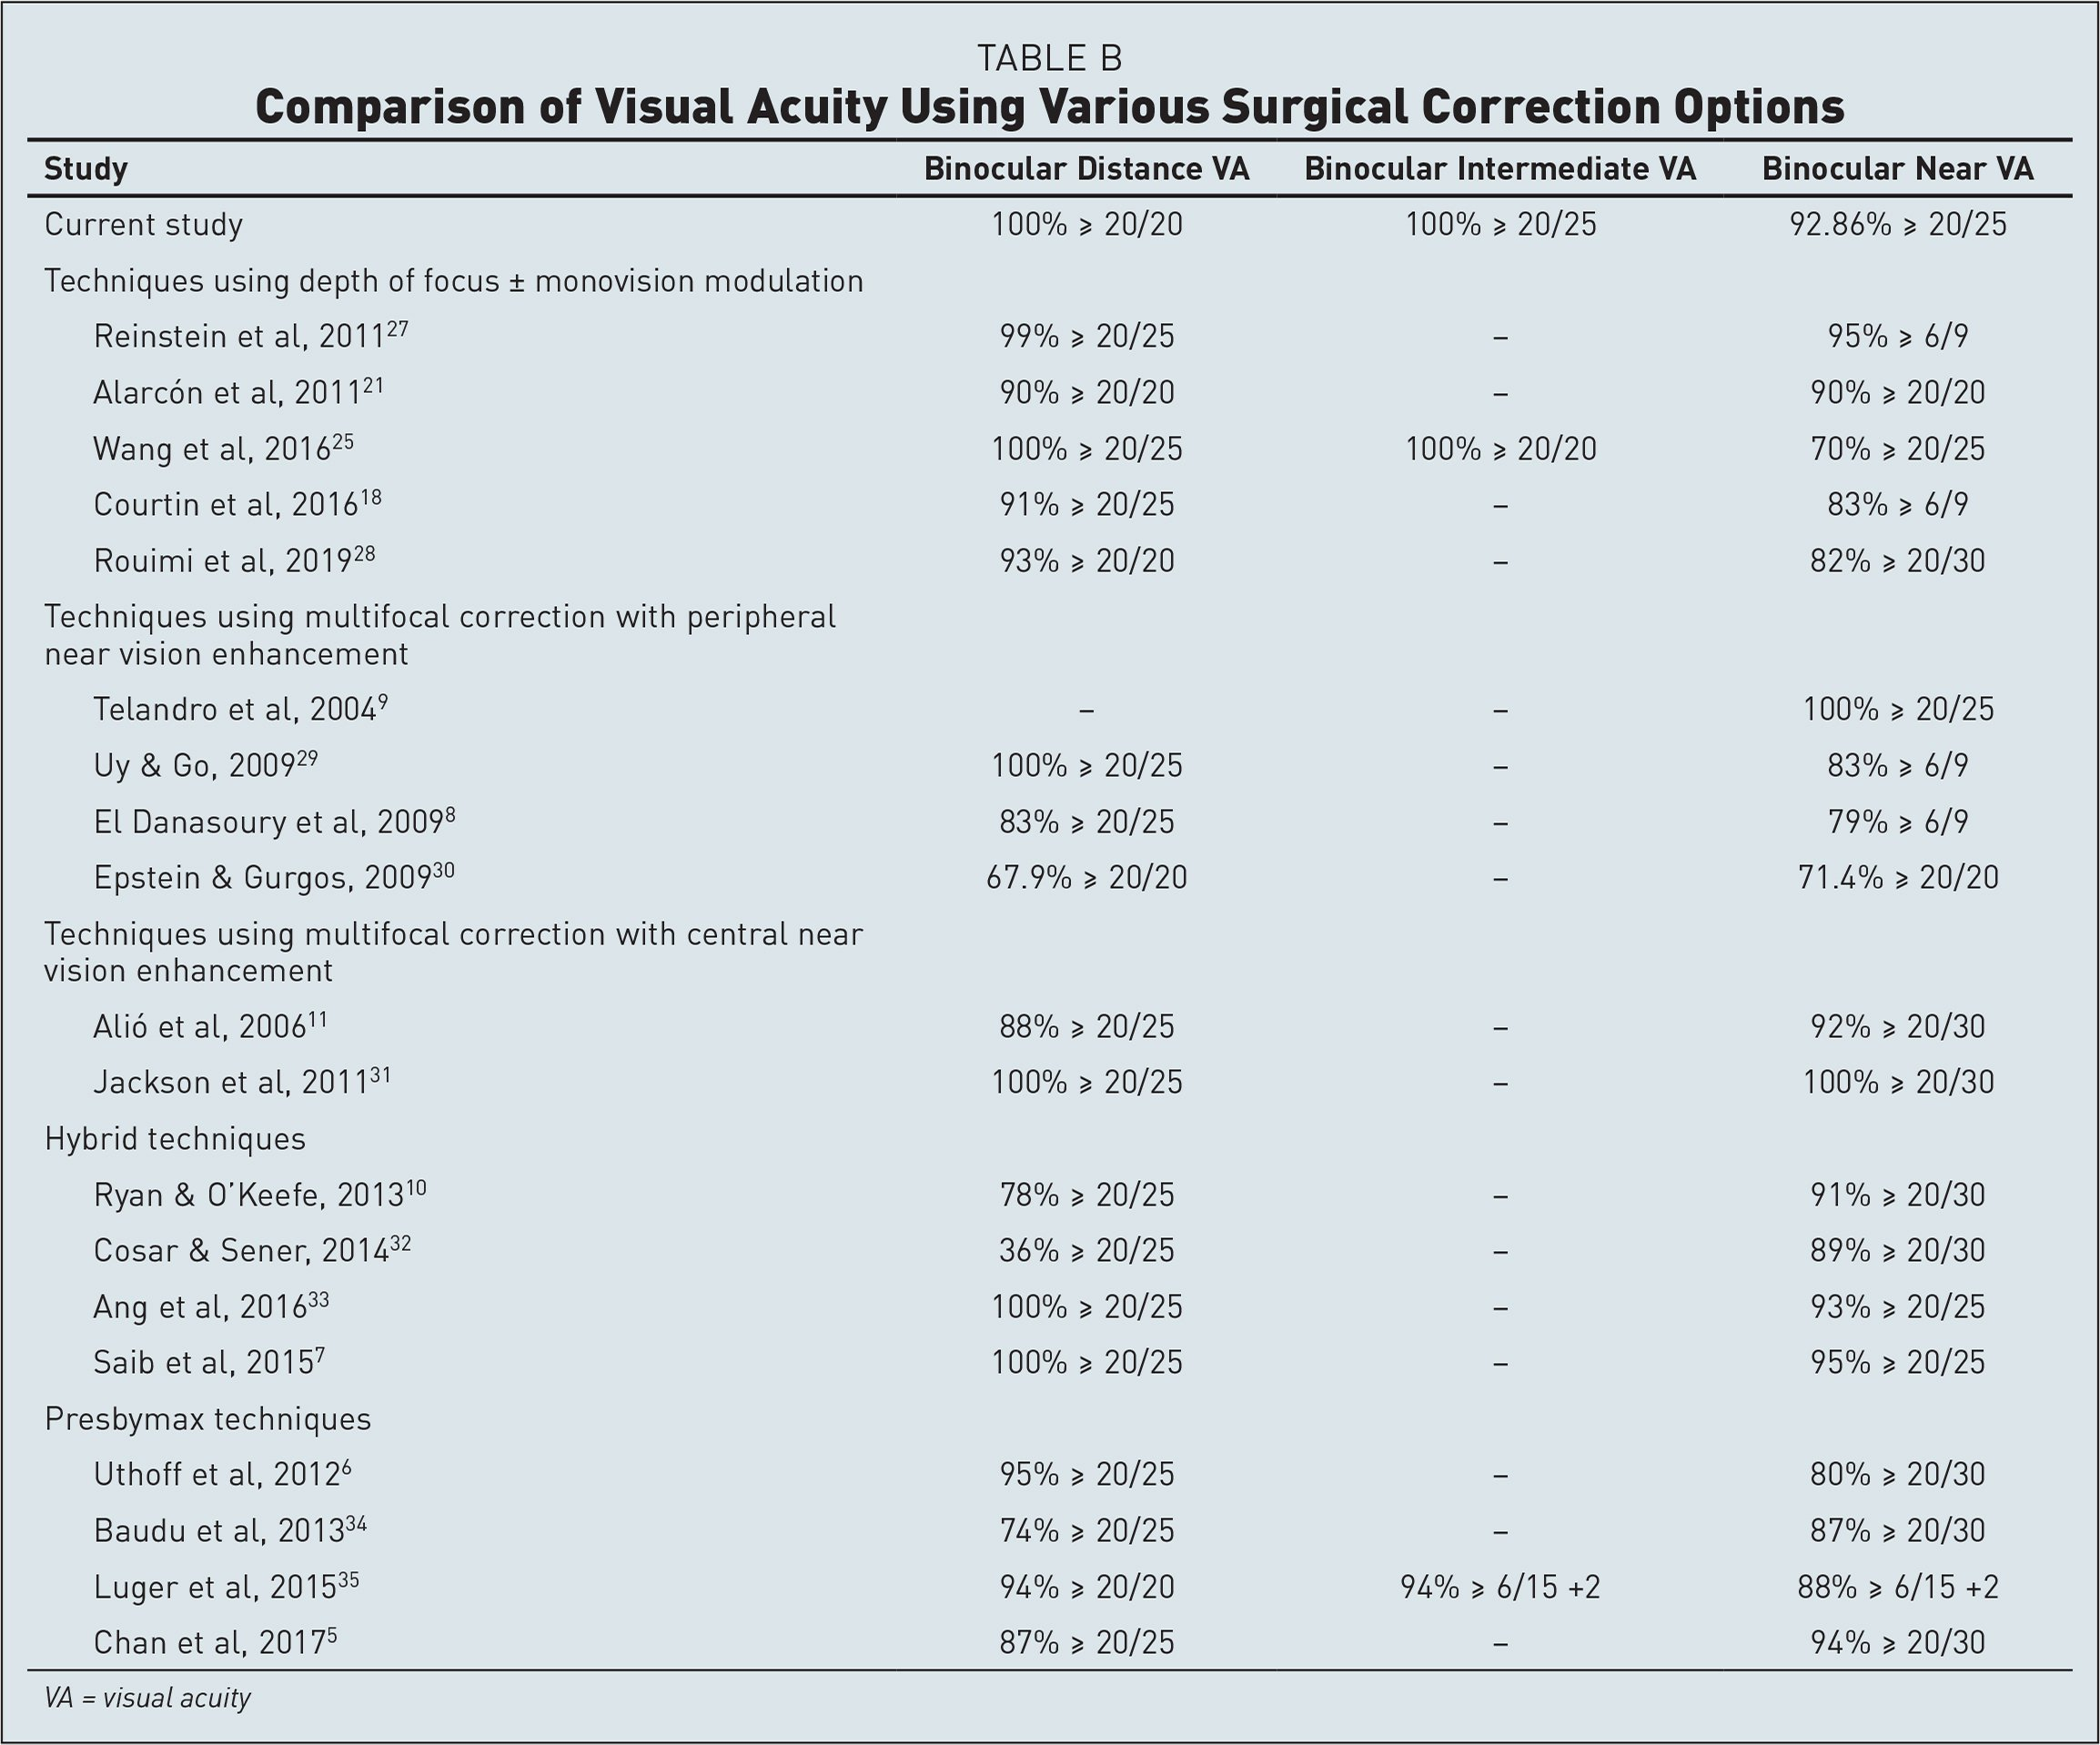 Comparison of Visual Acuity Using Various Surgical Correction Options